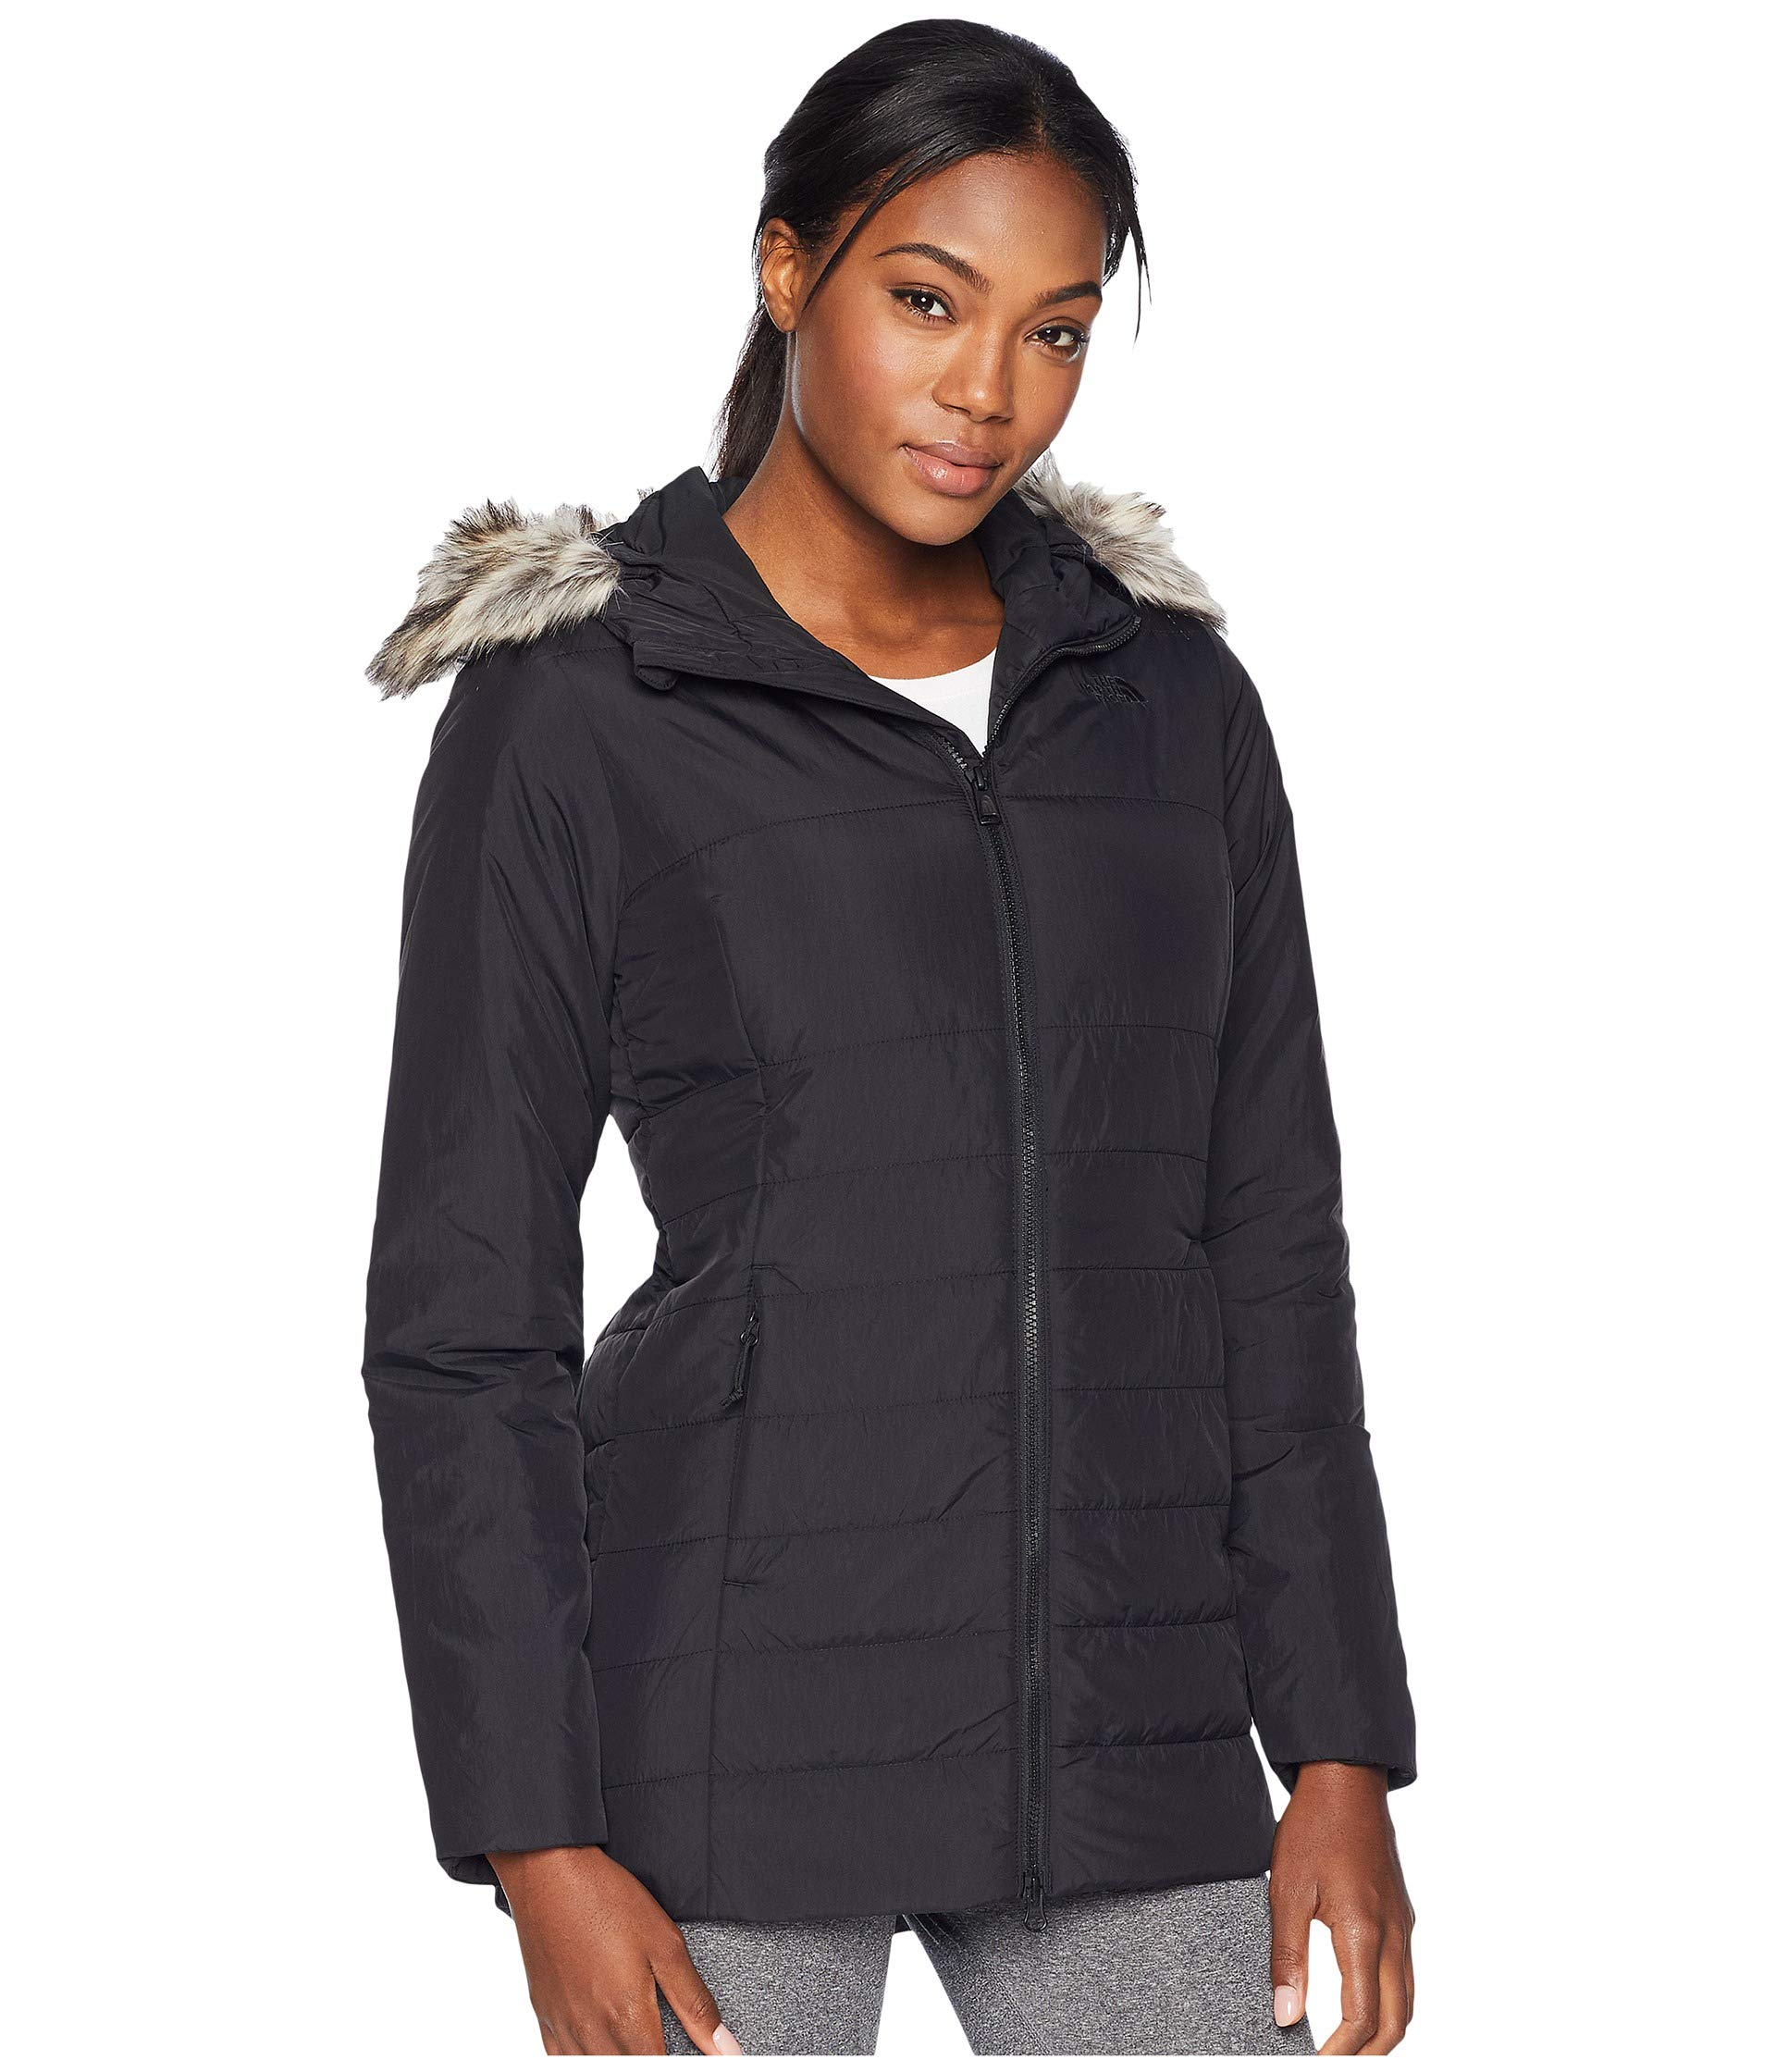 Tnf Face North Parka Black Harway Insulated The dOXxqww